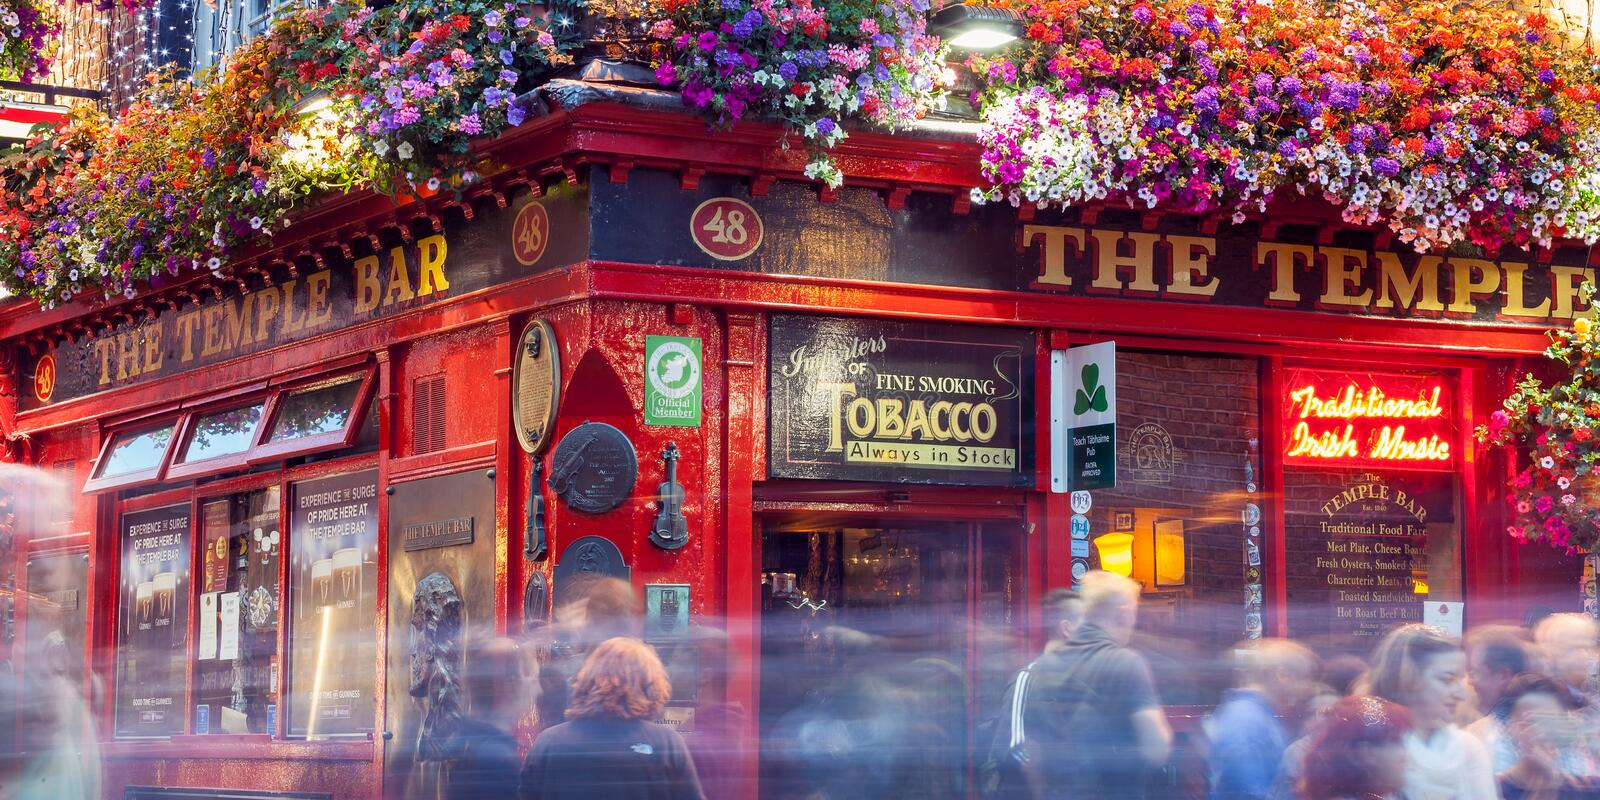 Croud of people at the Temple Bar. Dublin, Ireland - 05 July 2018: Croud of people at the Temple Bar, a traditional pub in the Temple Bar entertainment district royalty free stock photo